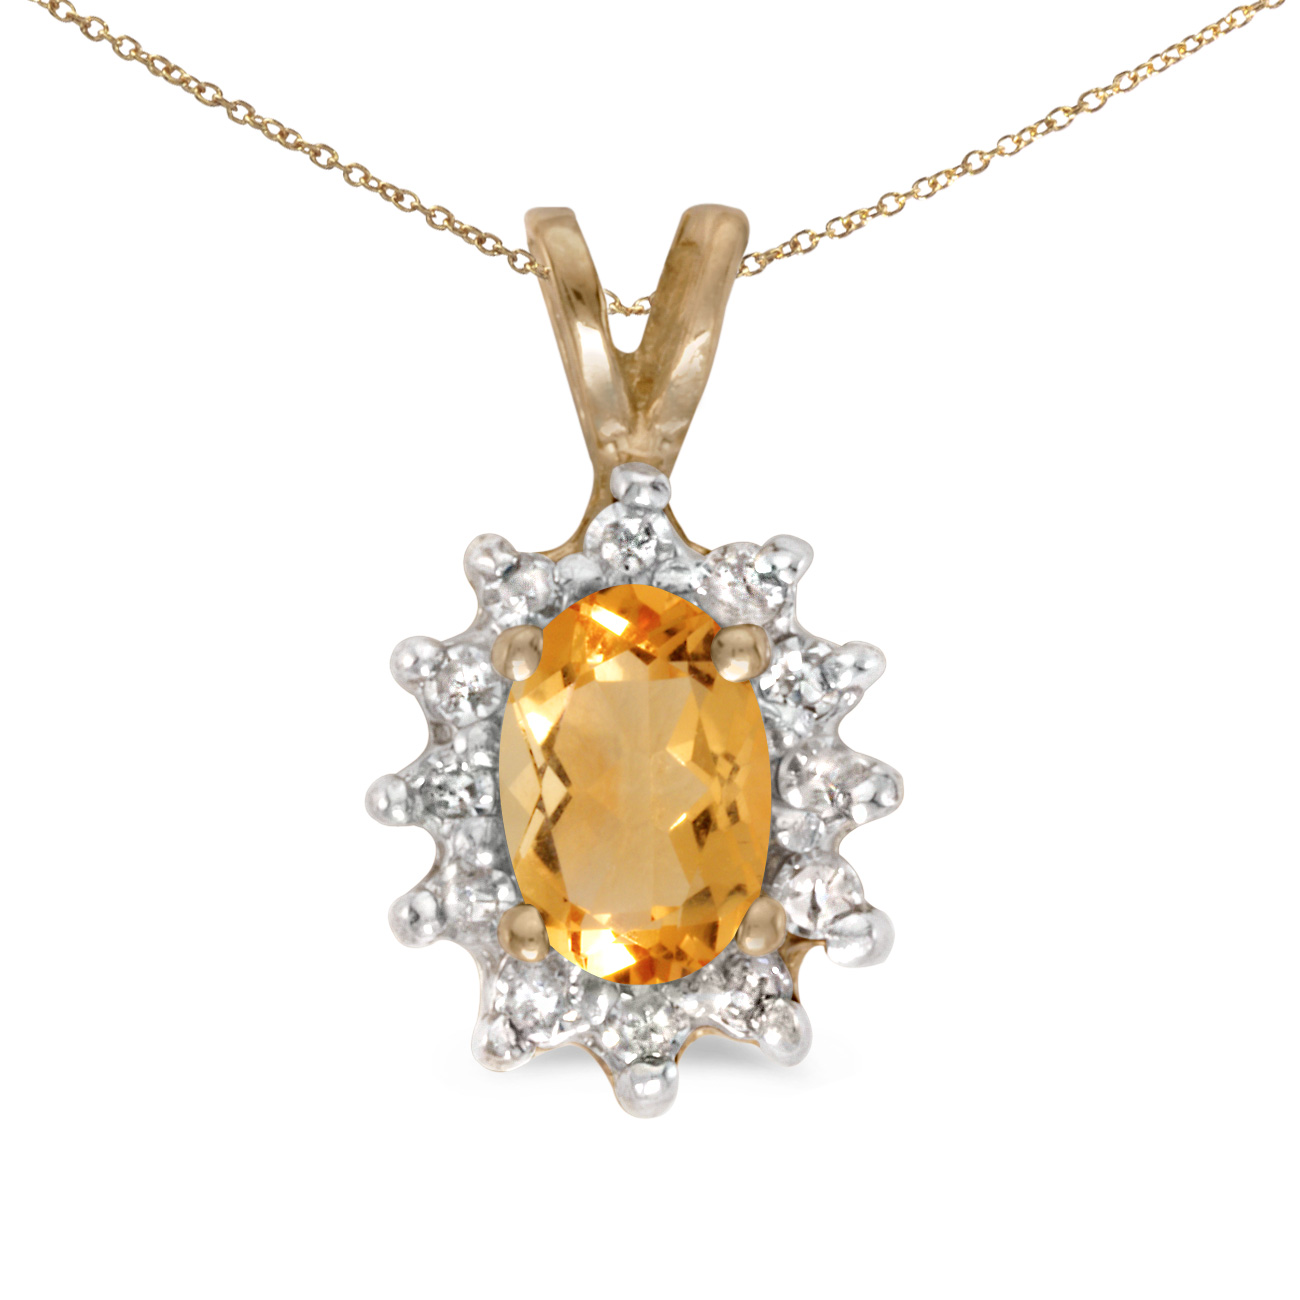 This 14k yellow gold oval citrine and diamond pendant features a 6x4 mm genuine natural citrine with a 0.31 ct total weight.